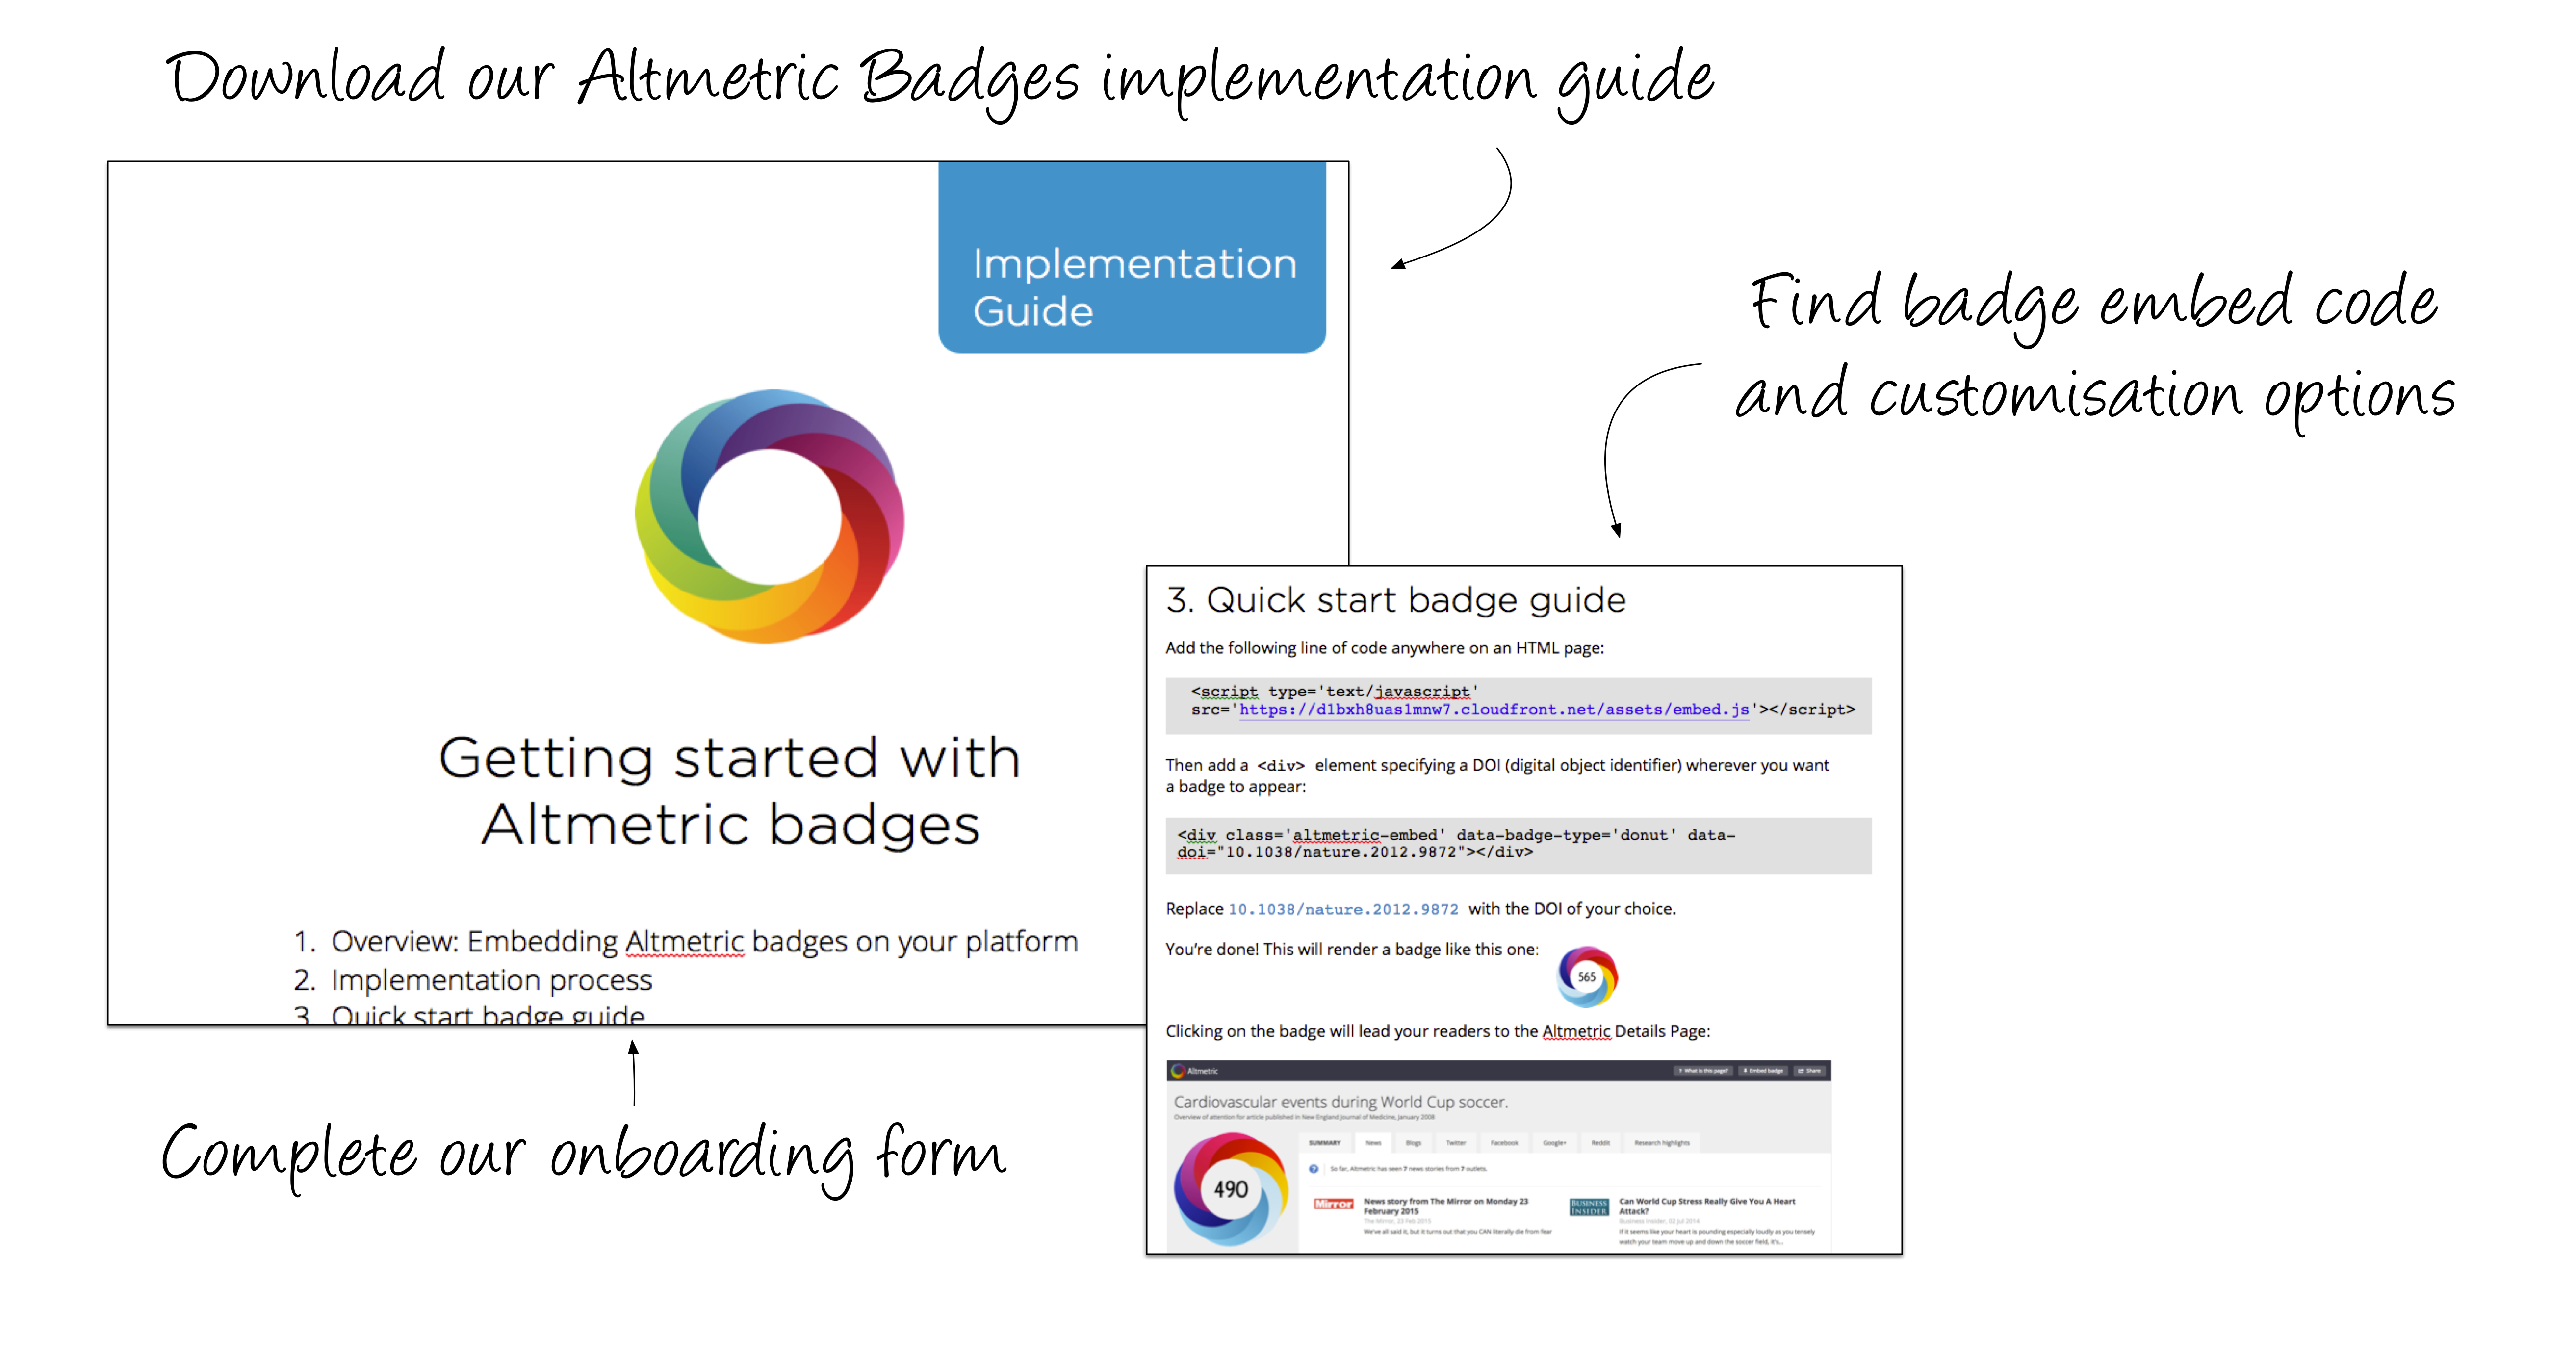 Altmetric badges implementation